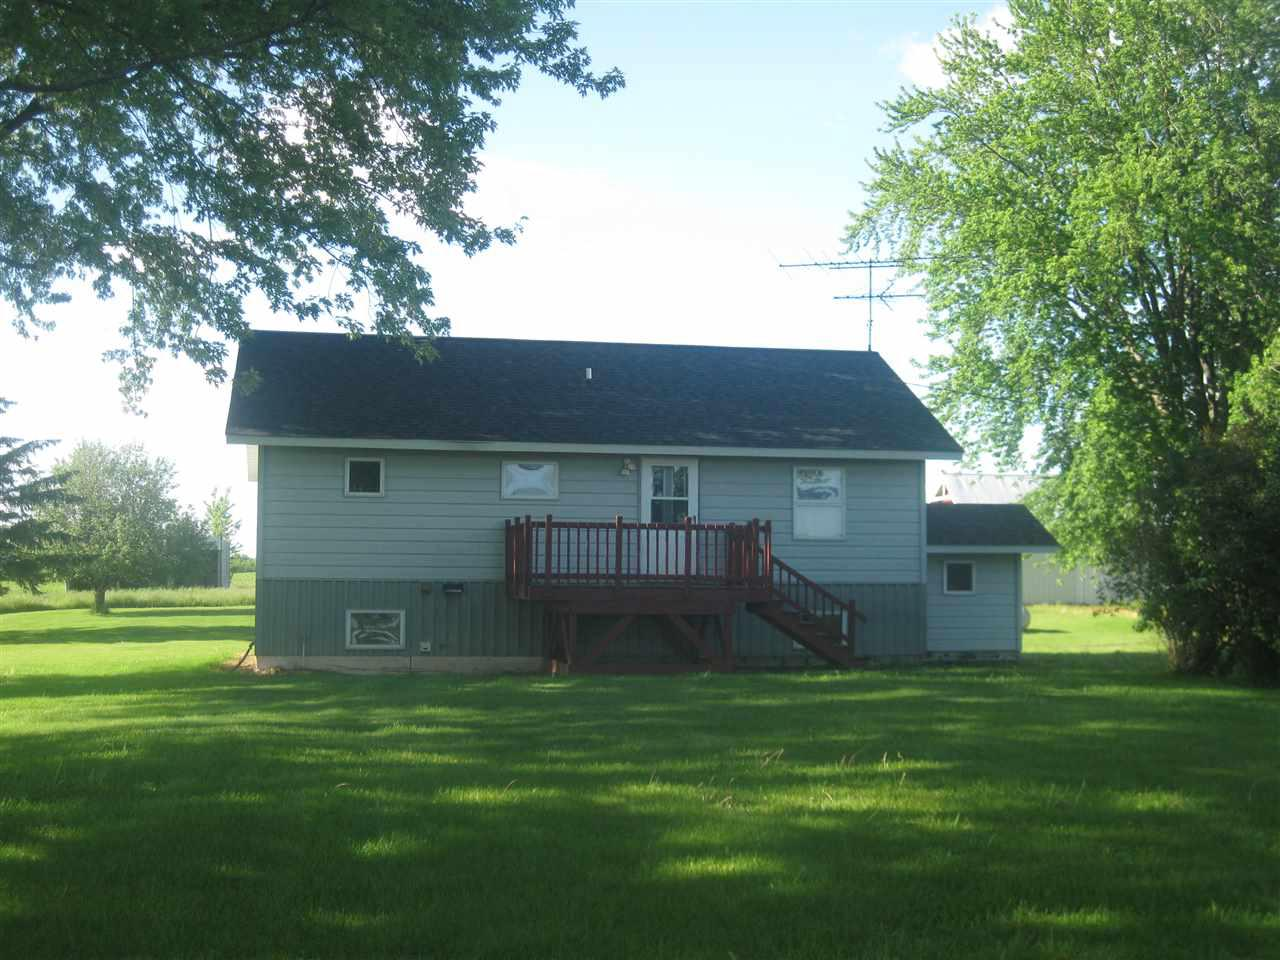 Great Hobby farm, with well maintained home and out buildings.  Features 2 story barn,  and two large pole buildings.  acreage is fenced in and would be perfect for horses or a few beefers.